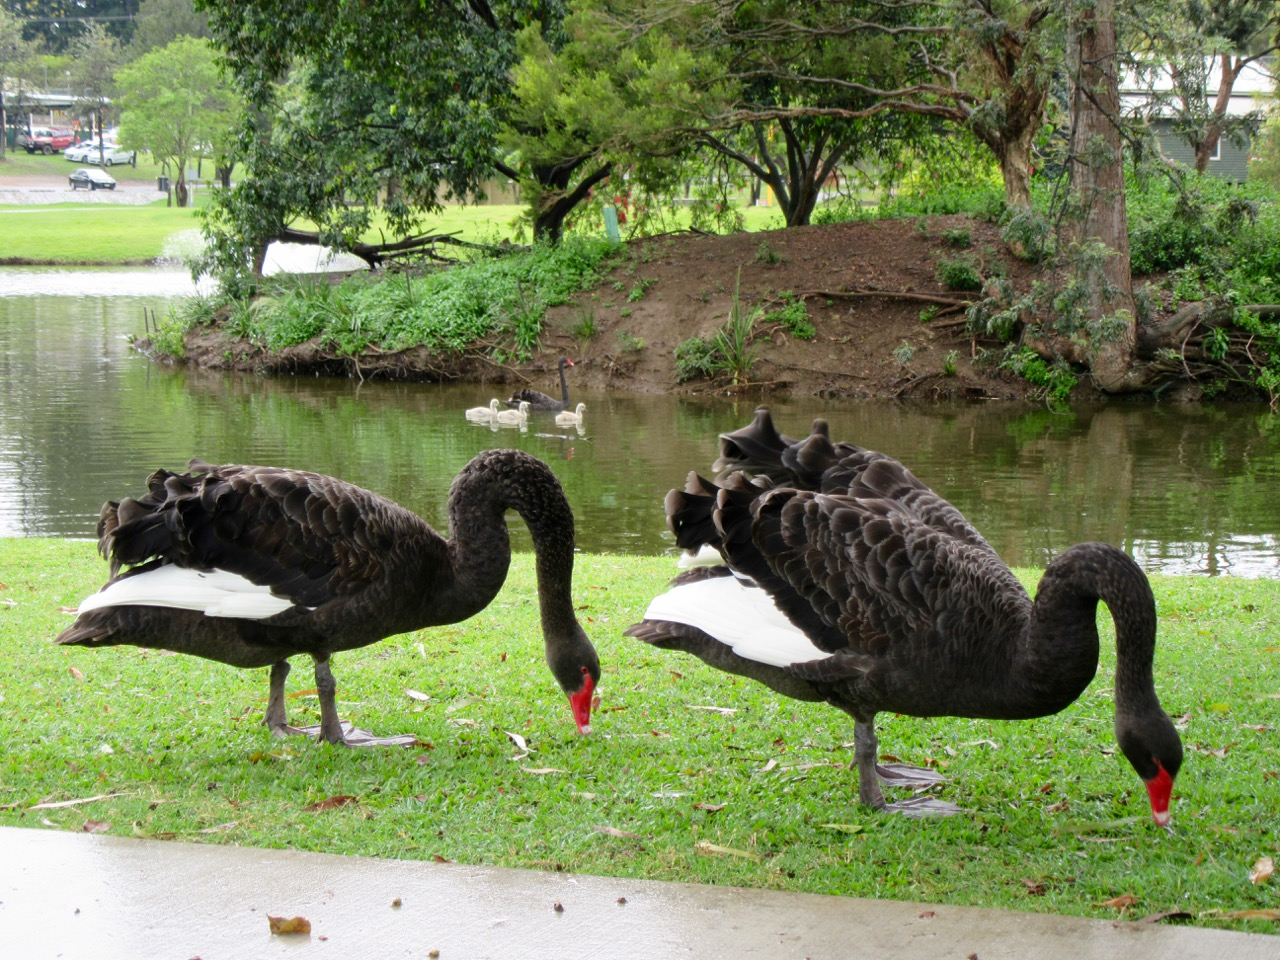 Black Swans in the park at Gympie